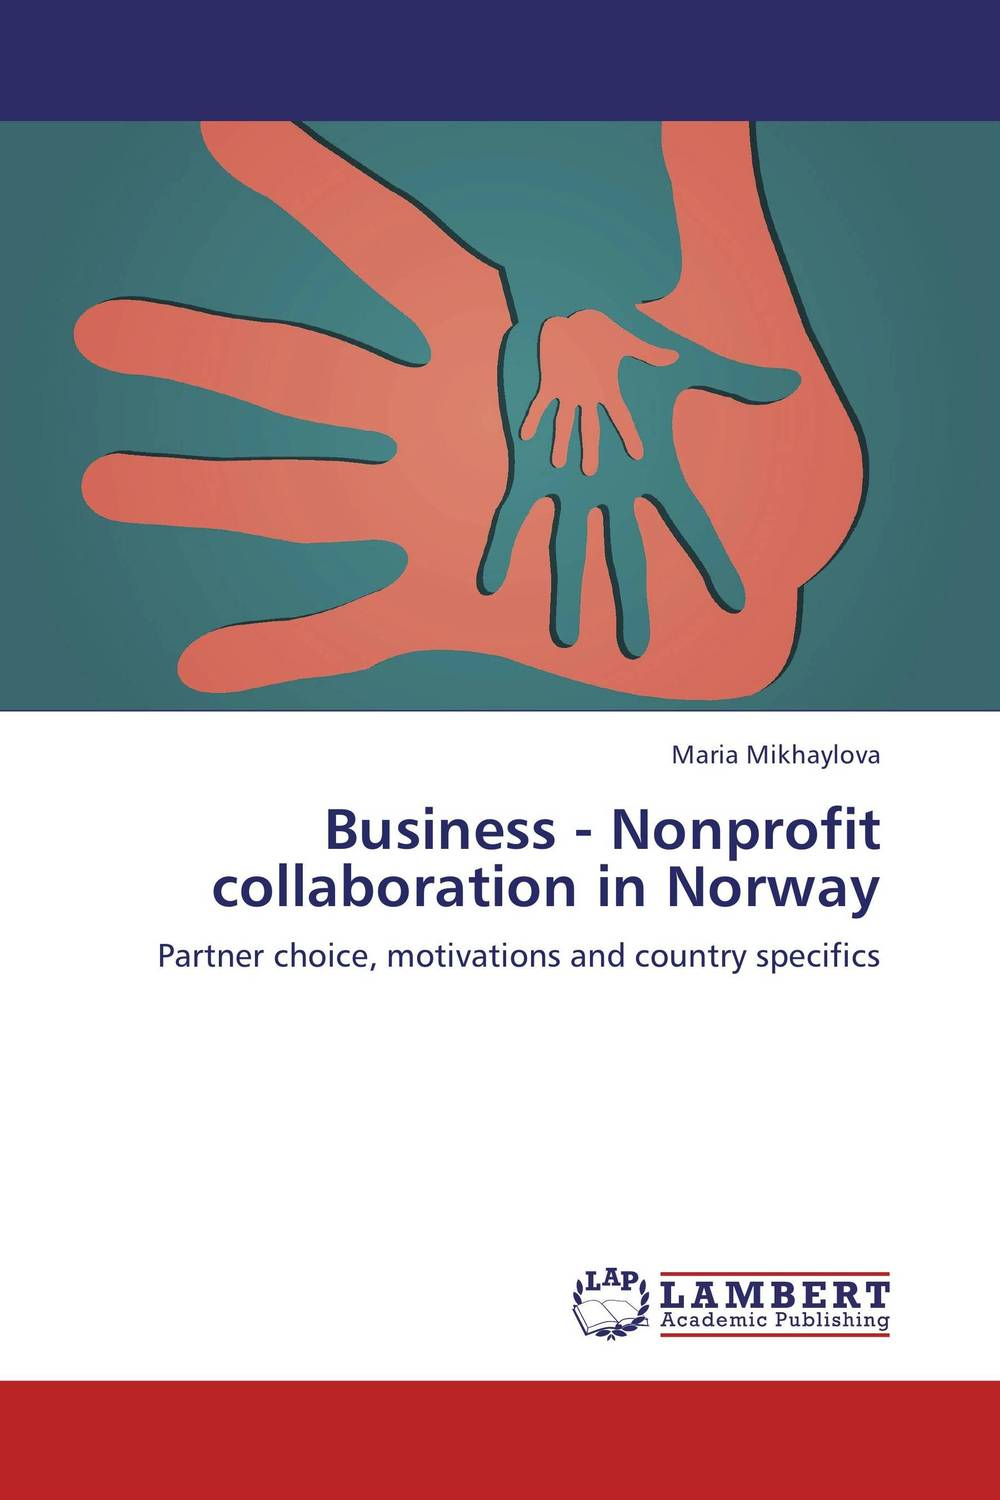 Business - Nonprofit collaboration in Norway macrosomia newborn in northern norway